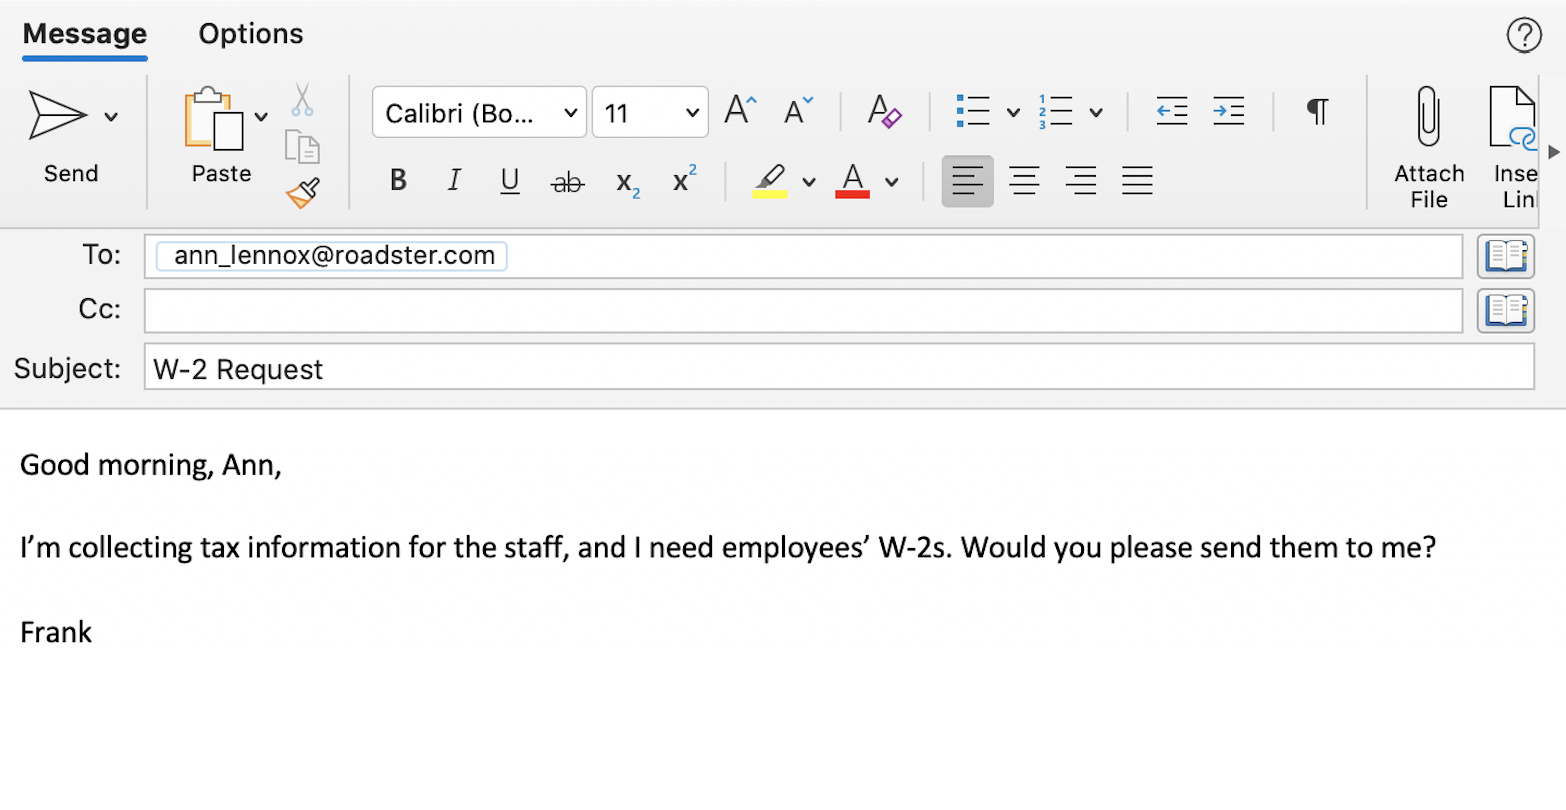 An example of imposter attempting to get PII using business email compromise (BEC) tactics.